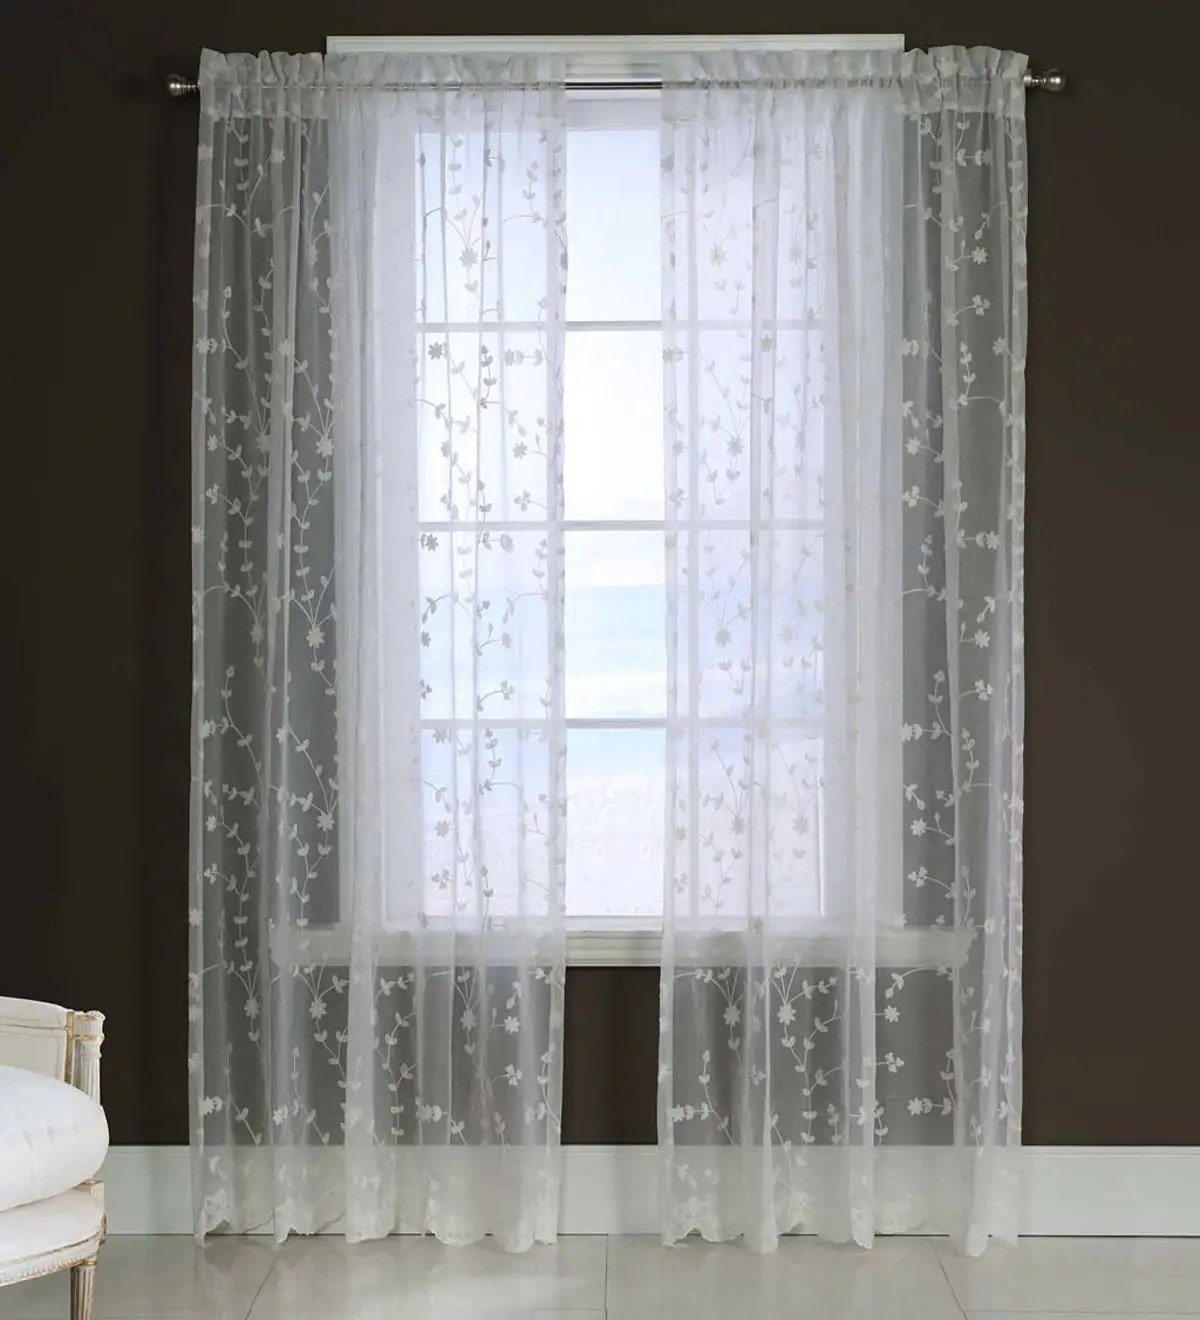 candlewicking embroidered sheer curtain